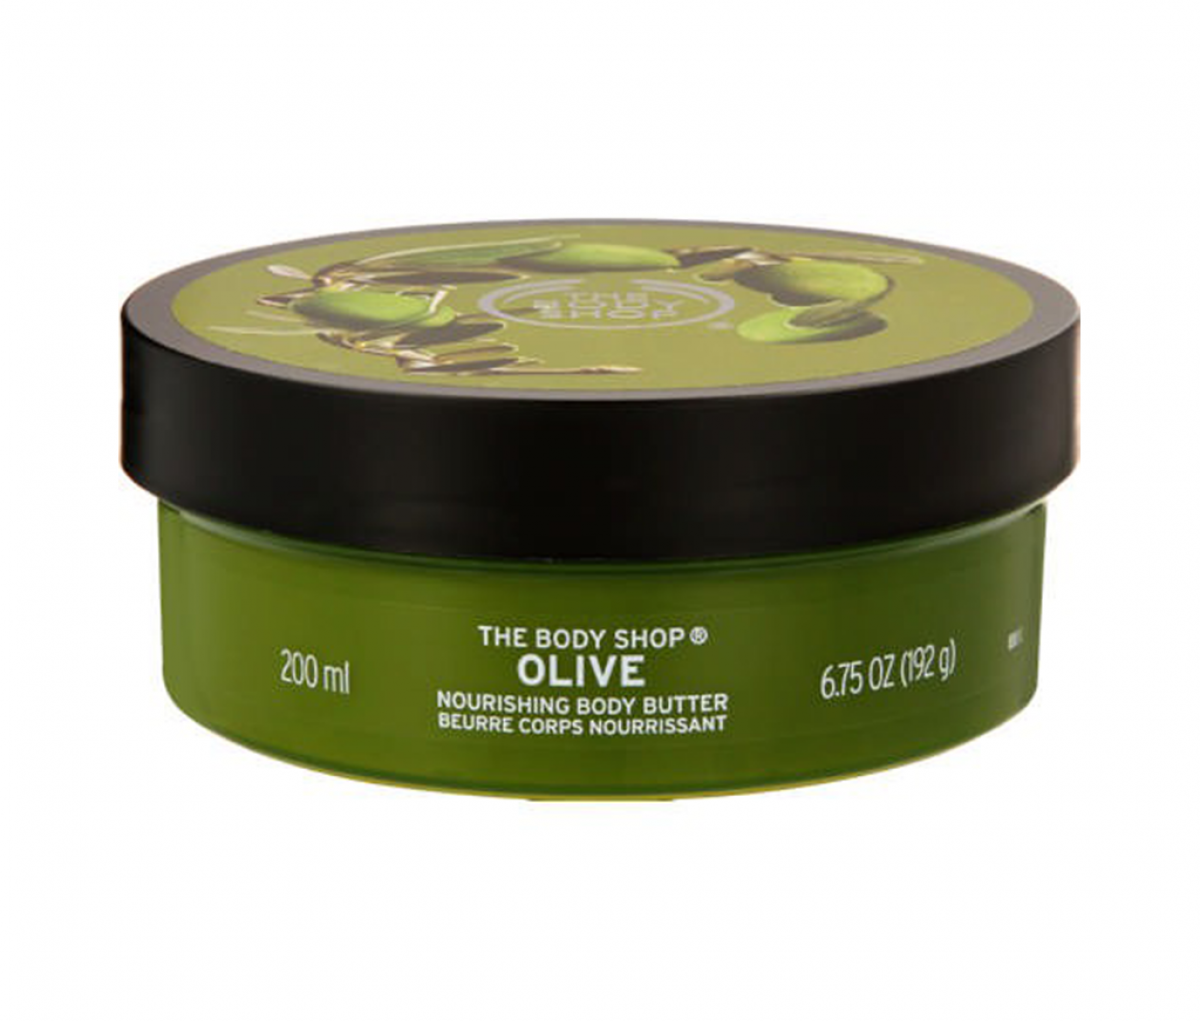 The body shop Body butter Olive